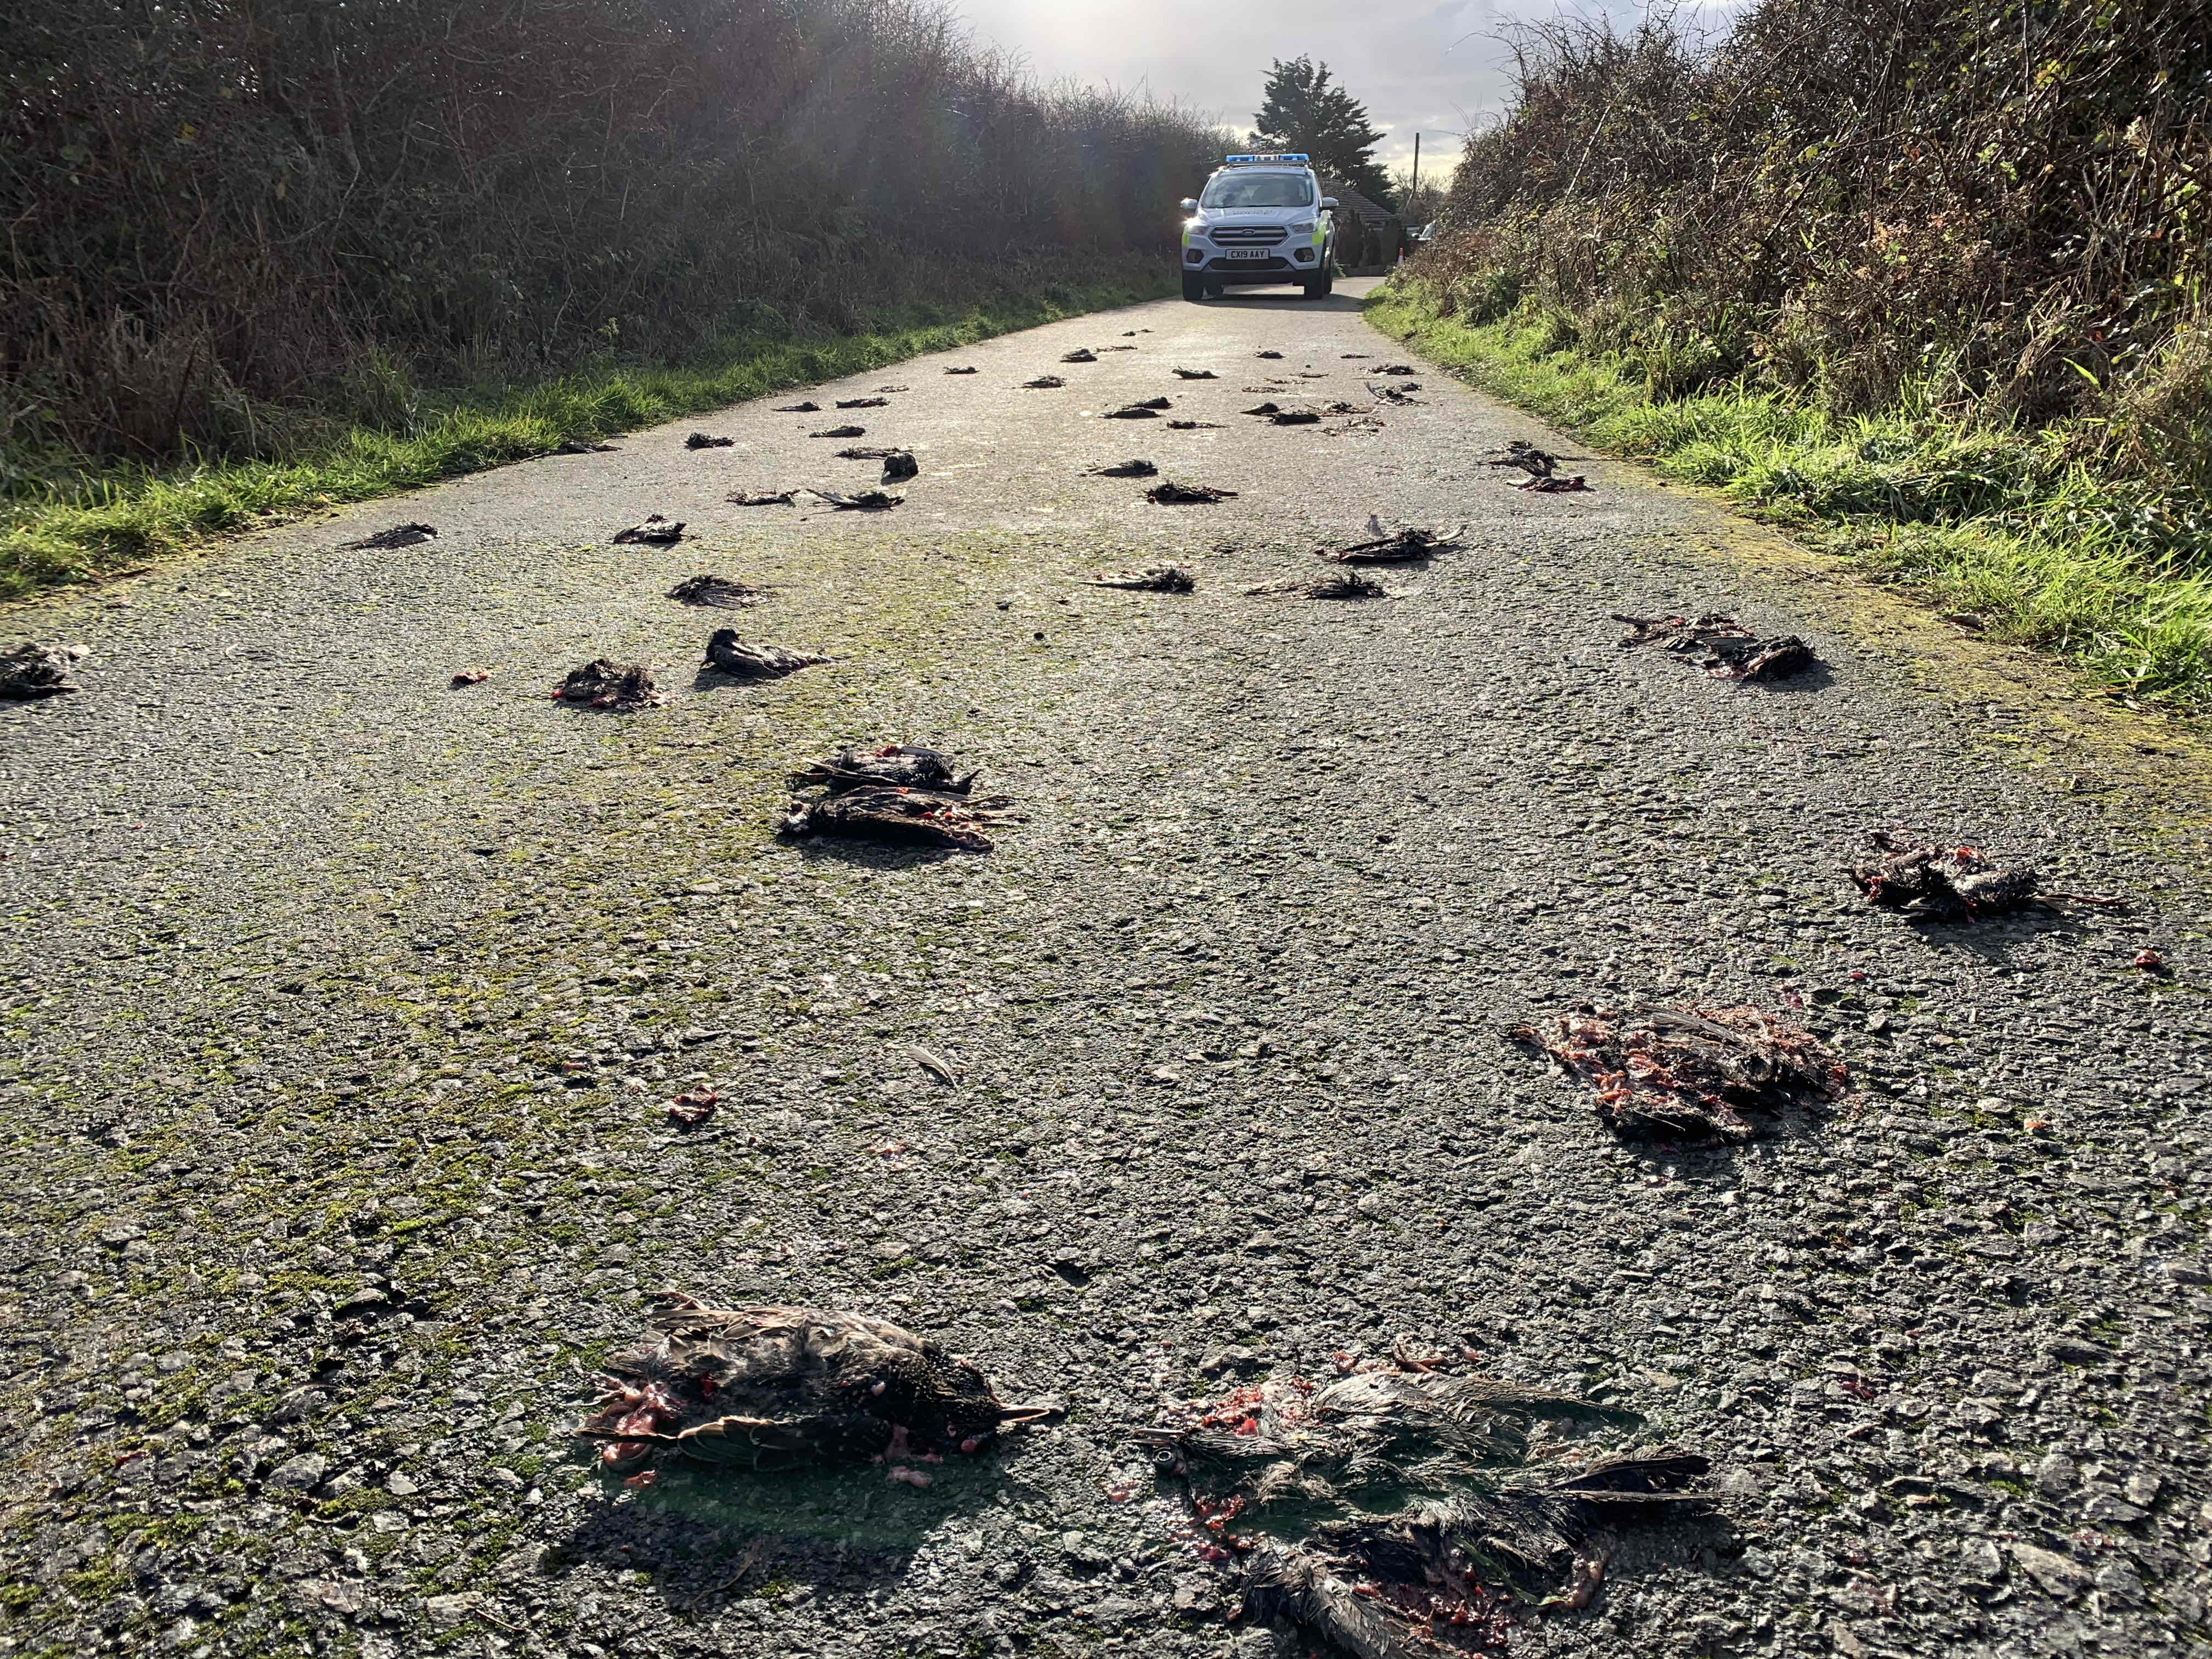 Hundreds of dead birds found in Wales 'hit the earth fleeing a Bird of Prey'